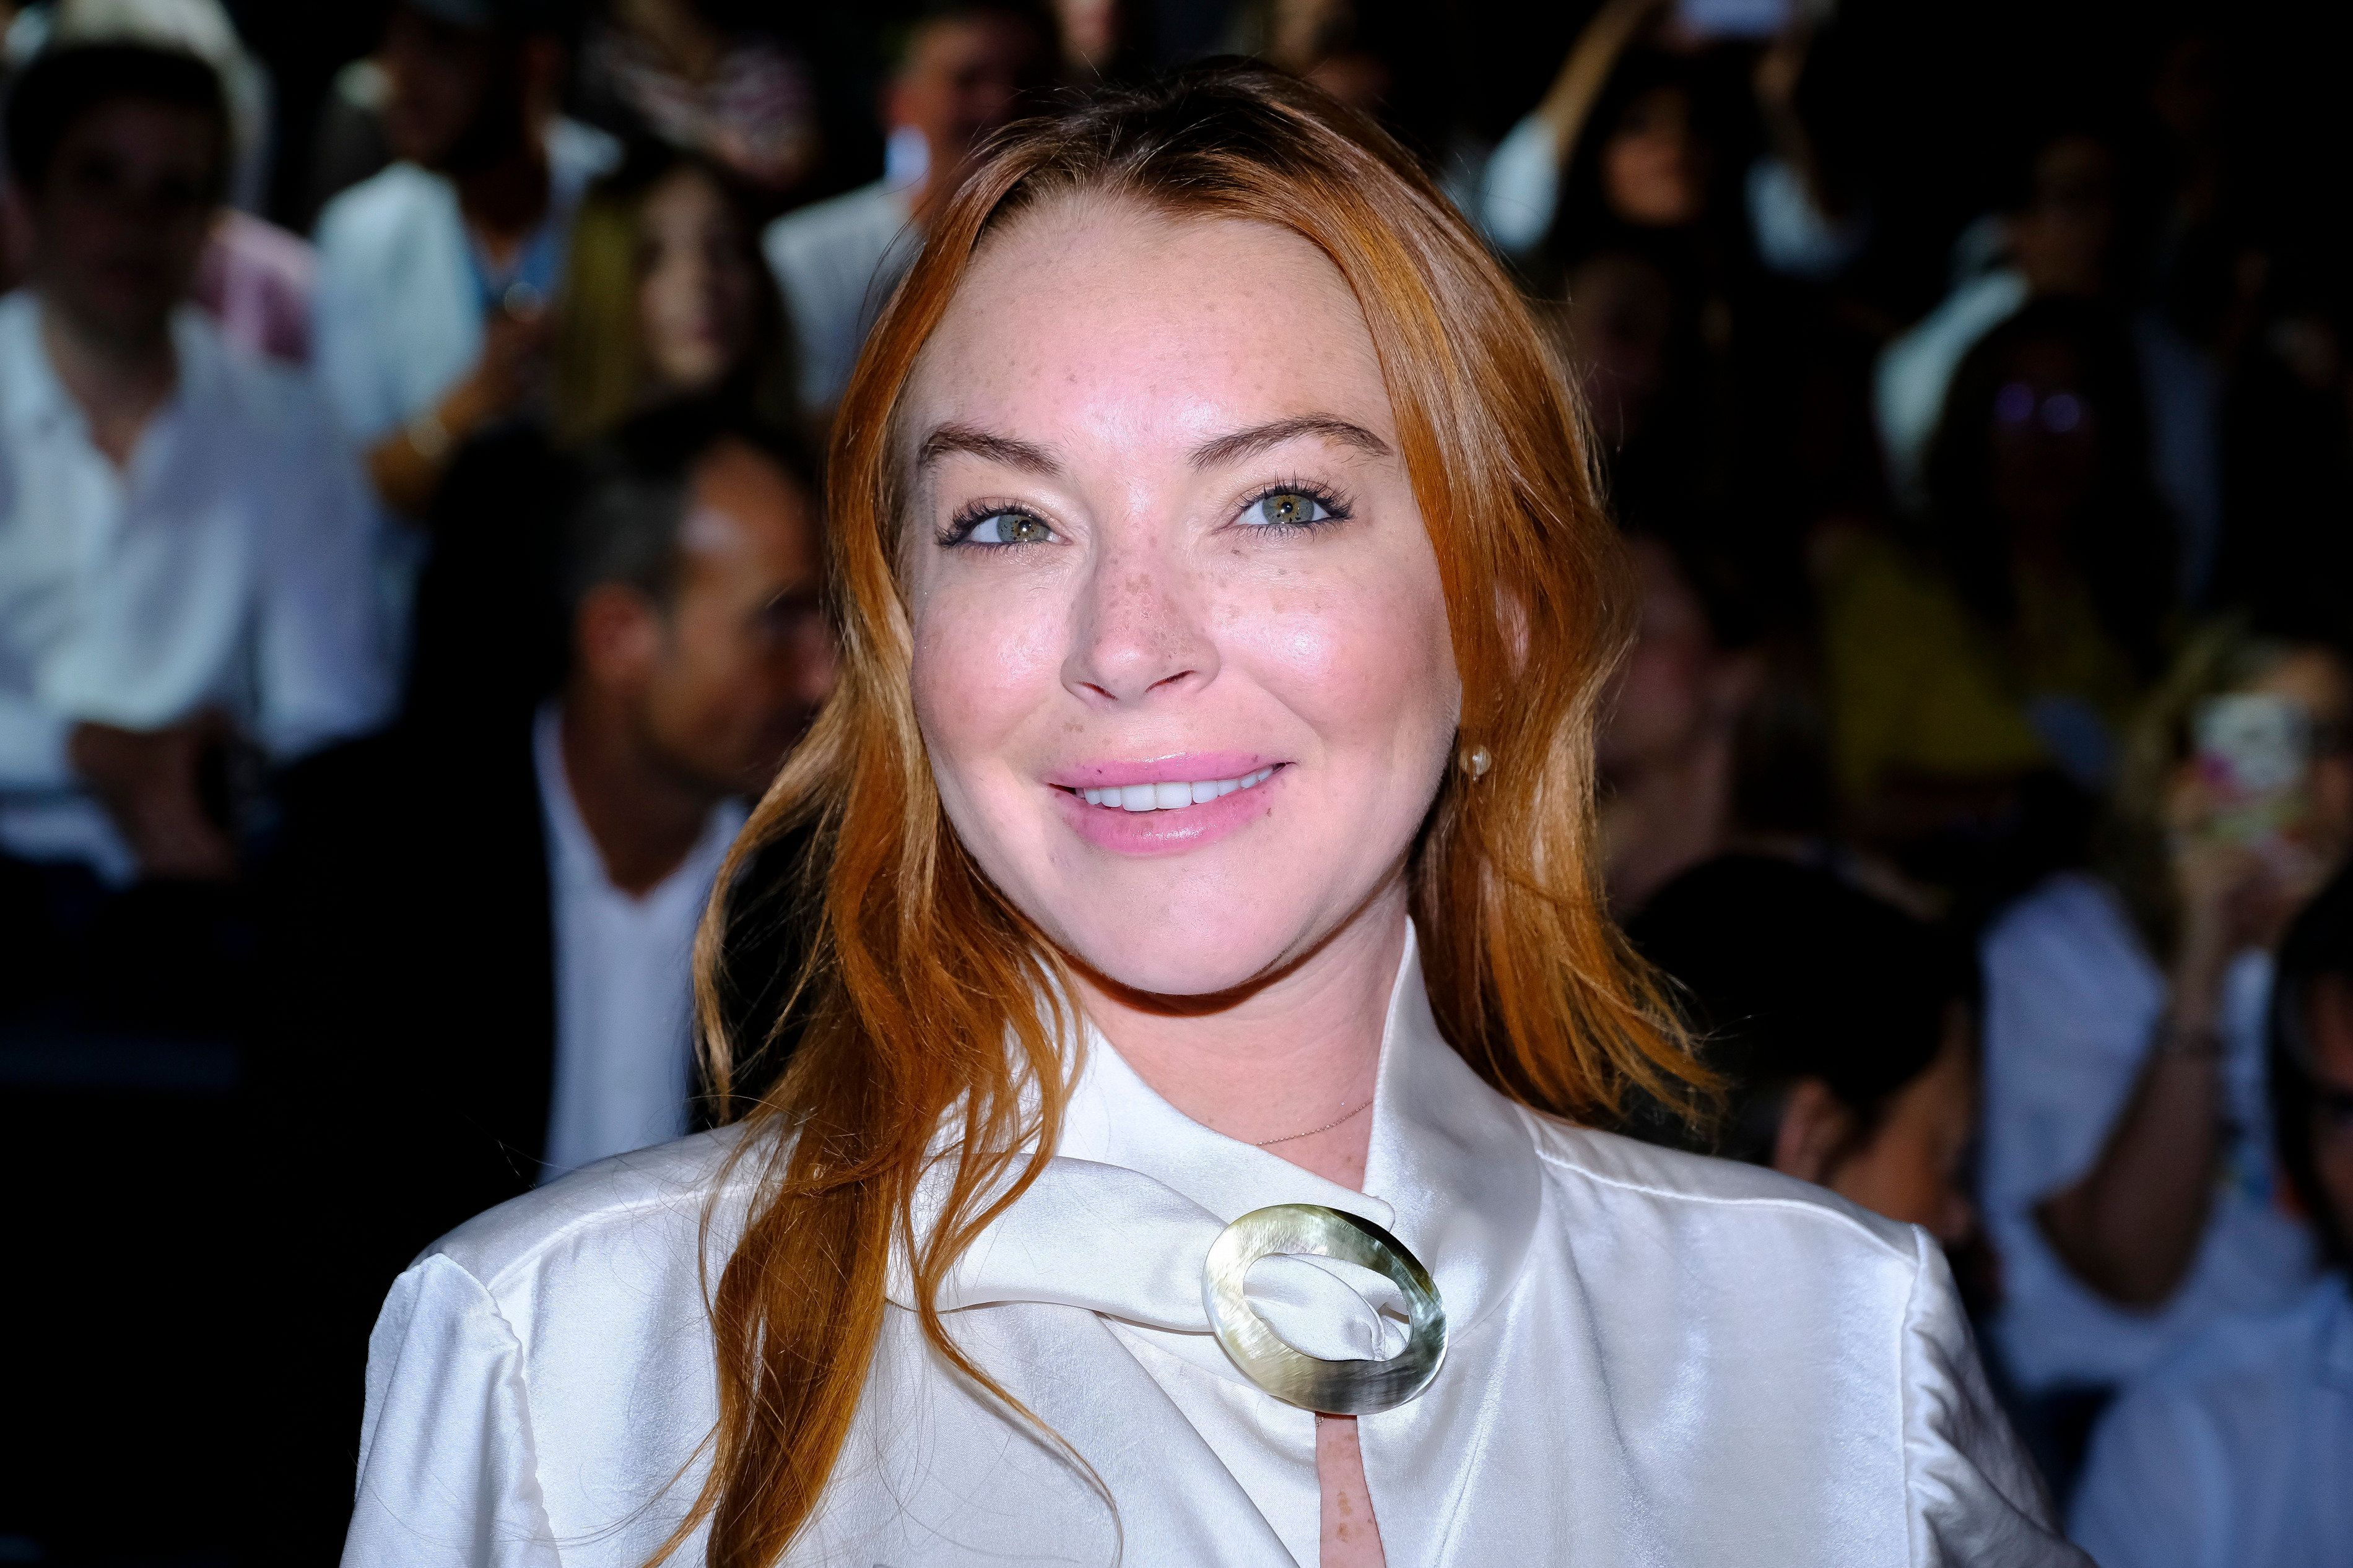 Lindsay Lohan Shown Here At Madrid Fashion Week In  Said Women Should File